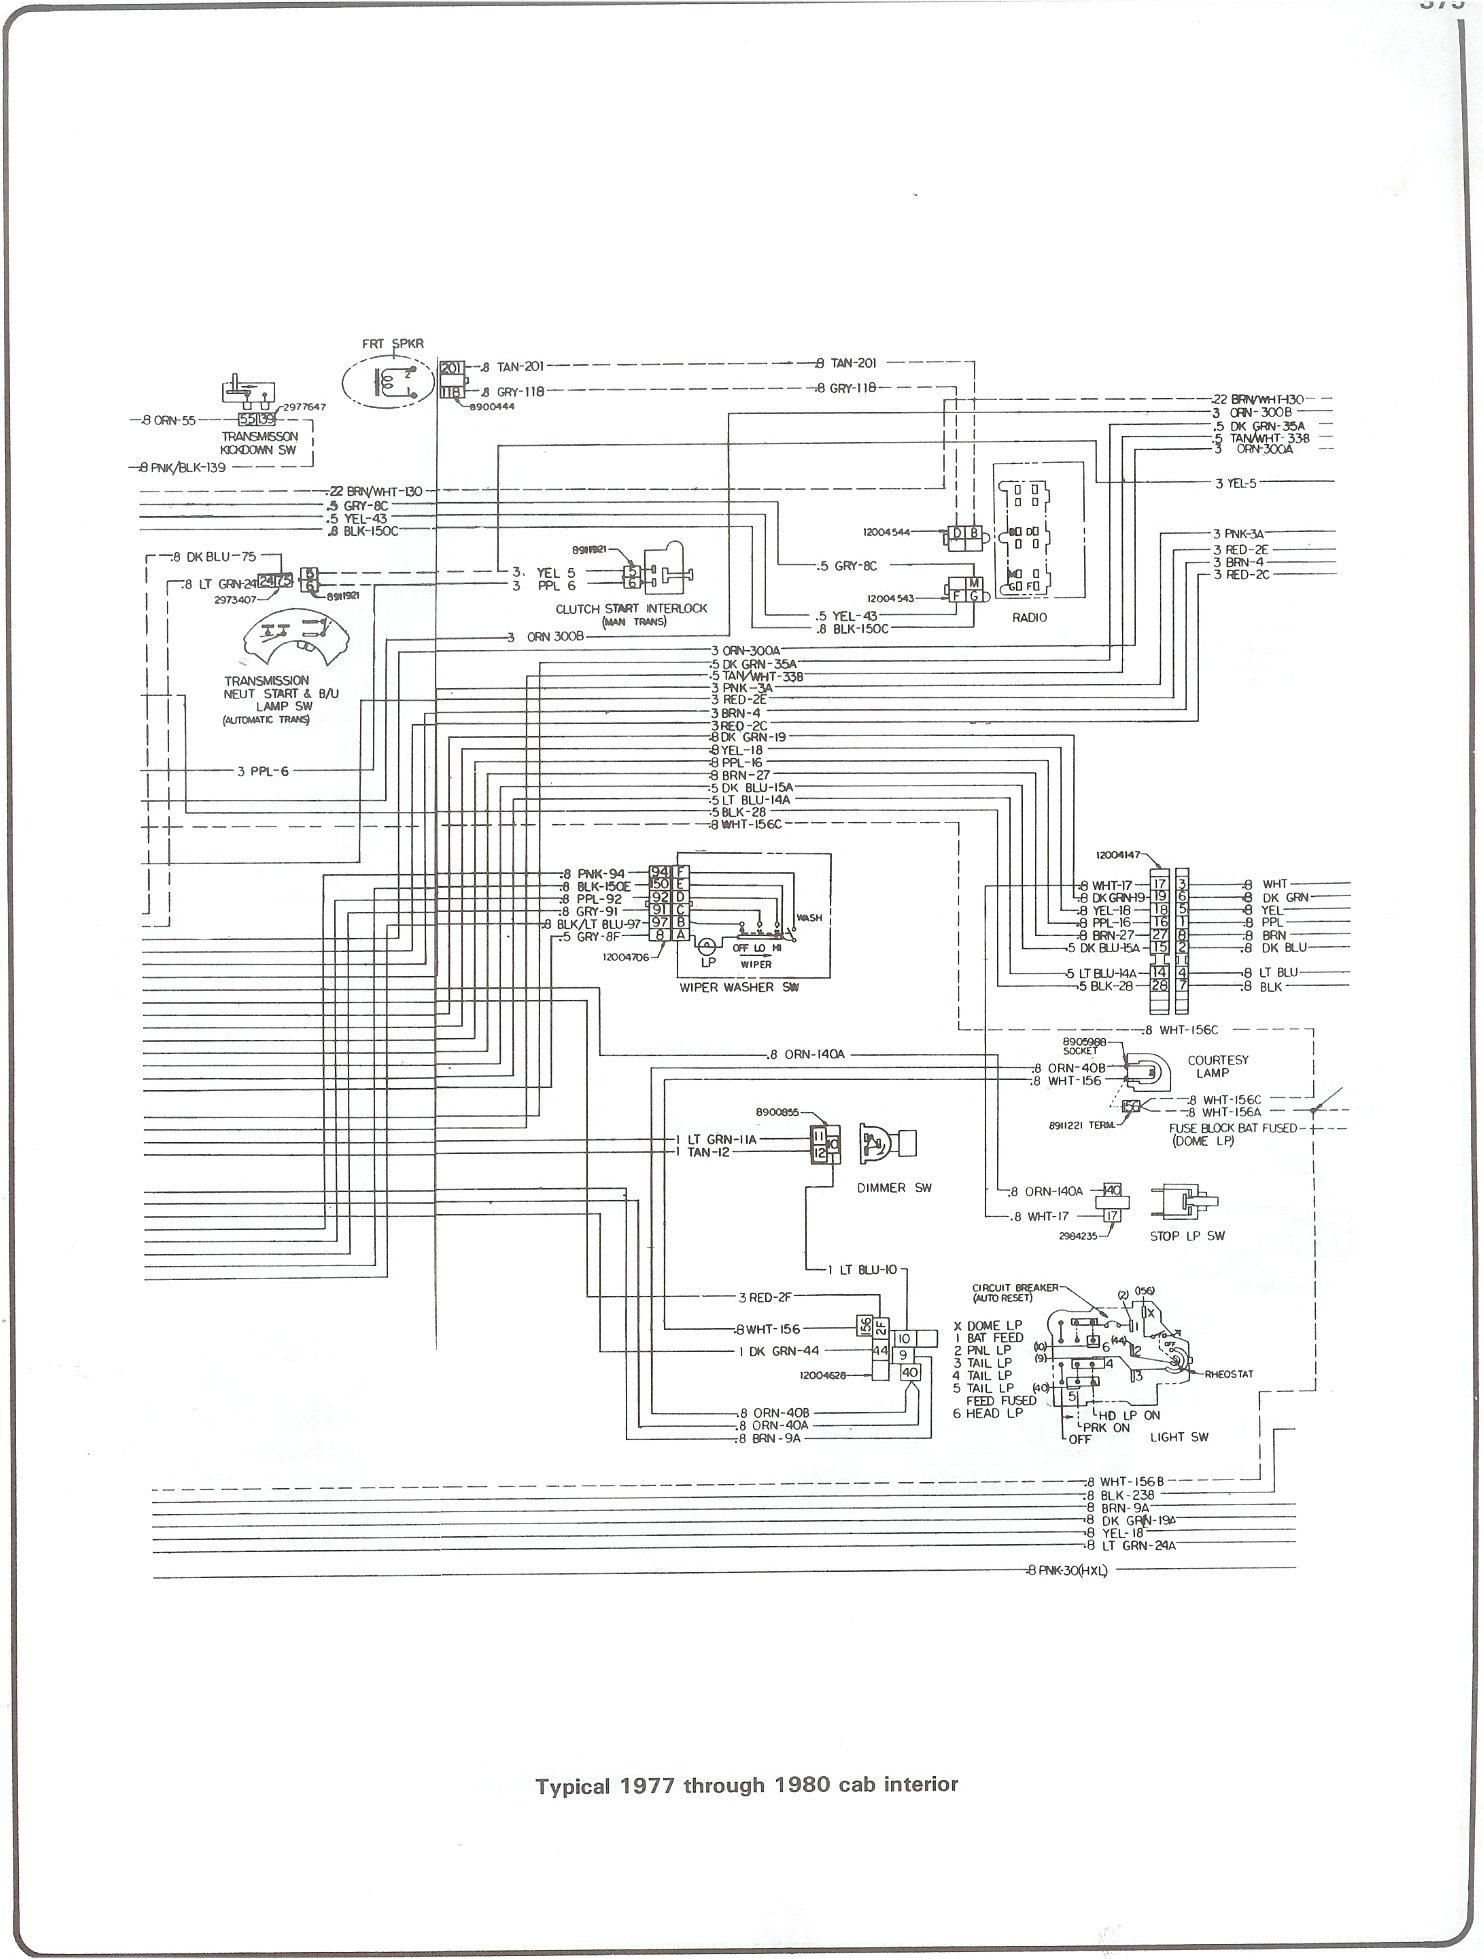 hight resolution of 1978 chevy truck fuse diagram wiring diagram fascinating 1976 chevy truck headlight switch wiring diagram 1976 chevy truck wiring diagram